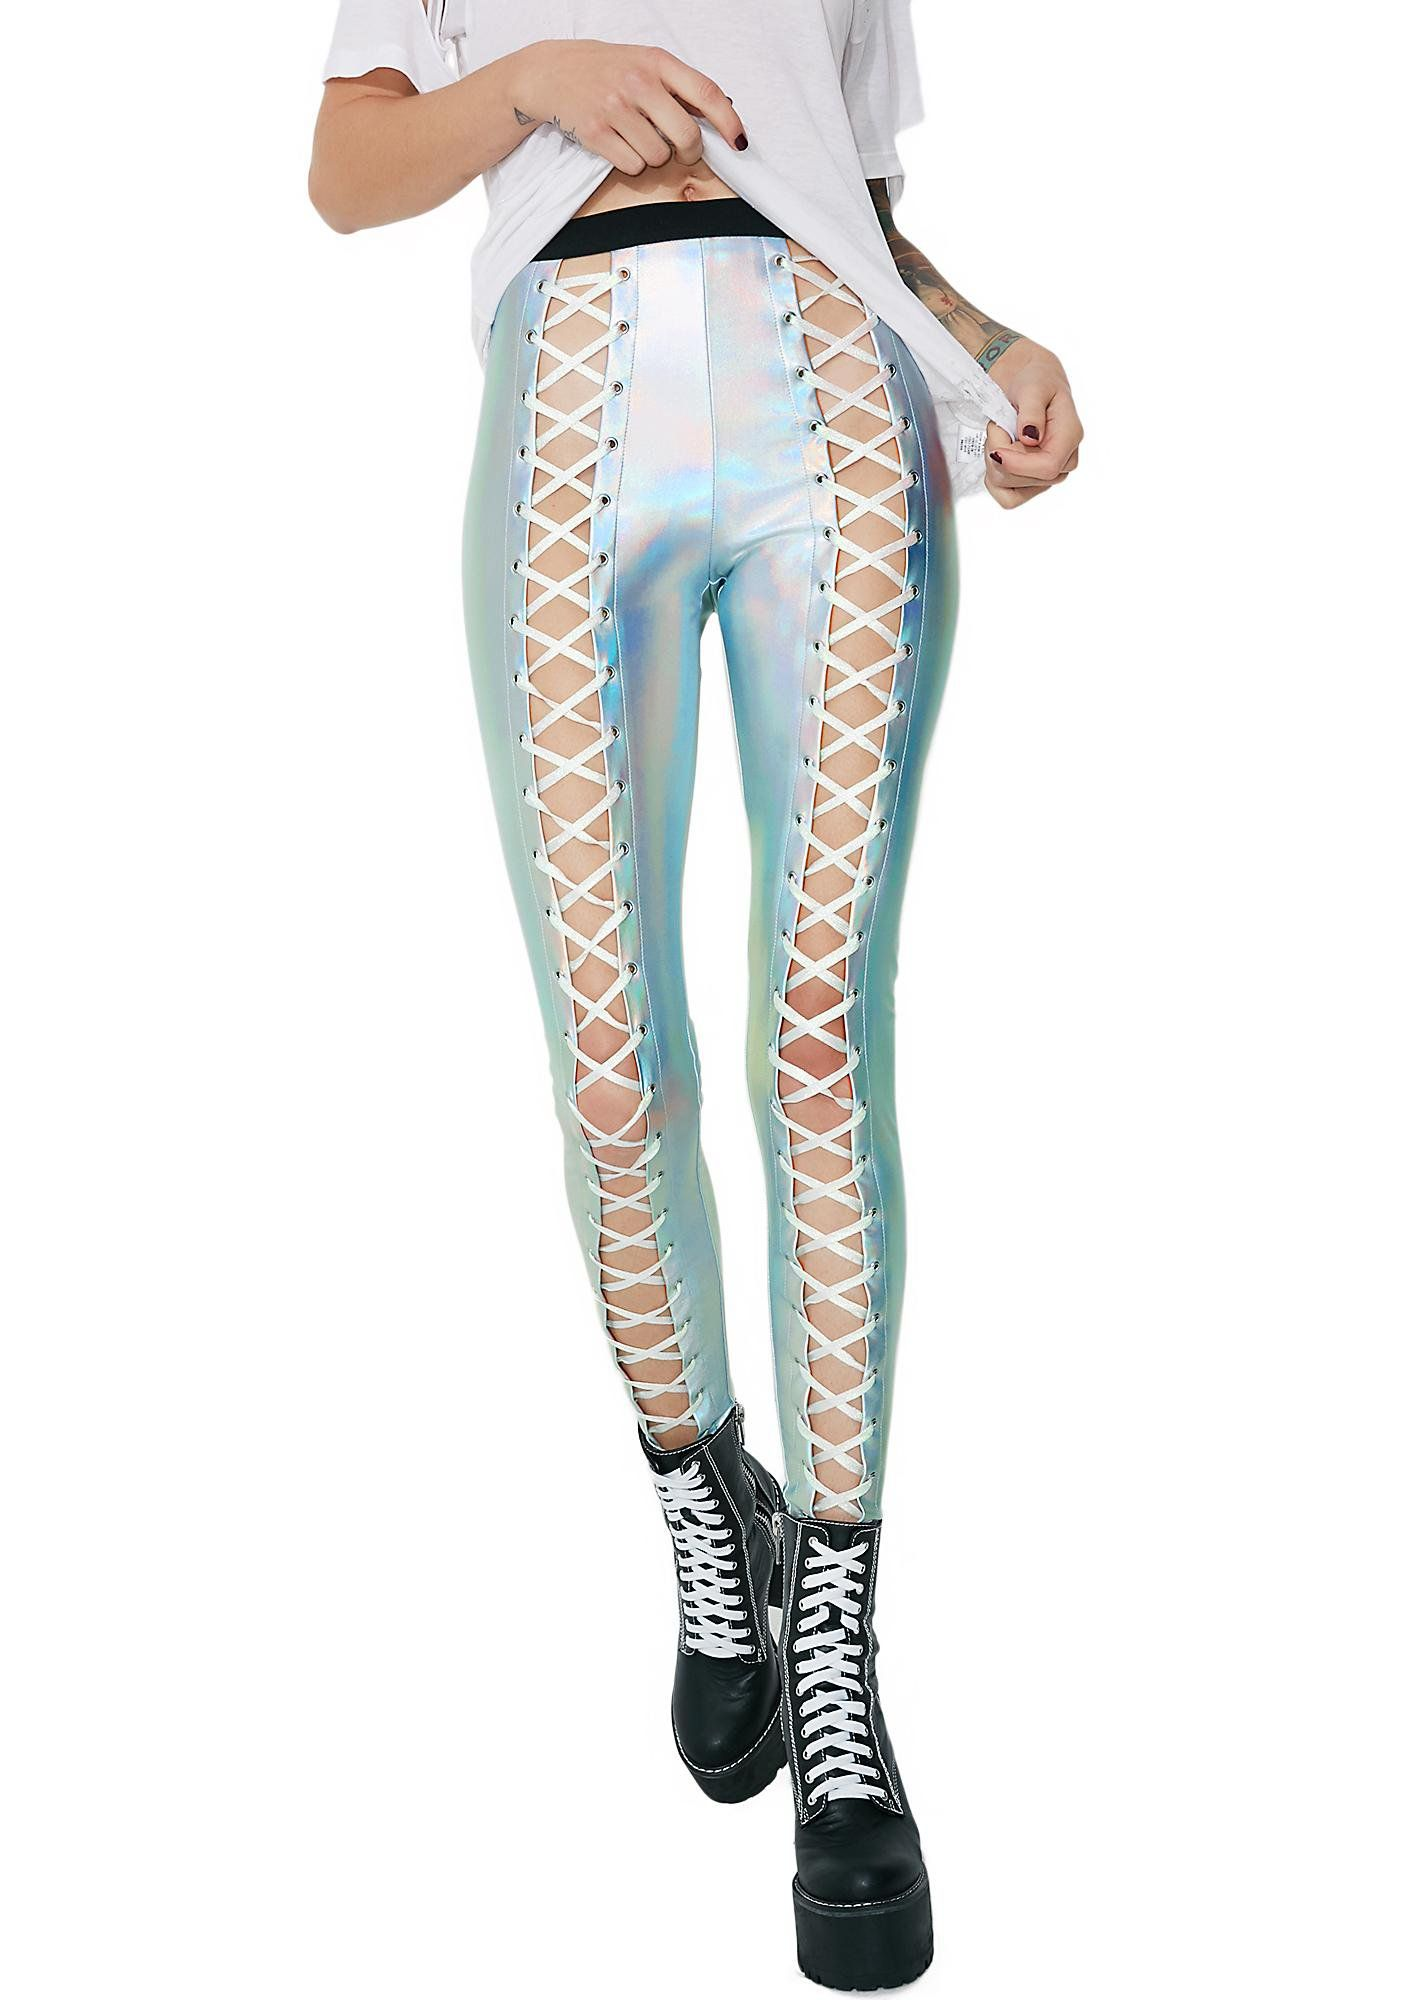 814991e852a8cd These insane leggings feature a mega shiny holographic silver construction  and sinfully snug stretchy fit, open lace-up front panels to show xXxtra  skin ...